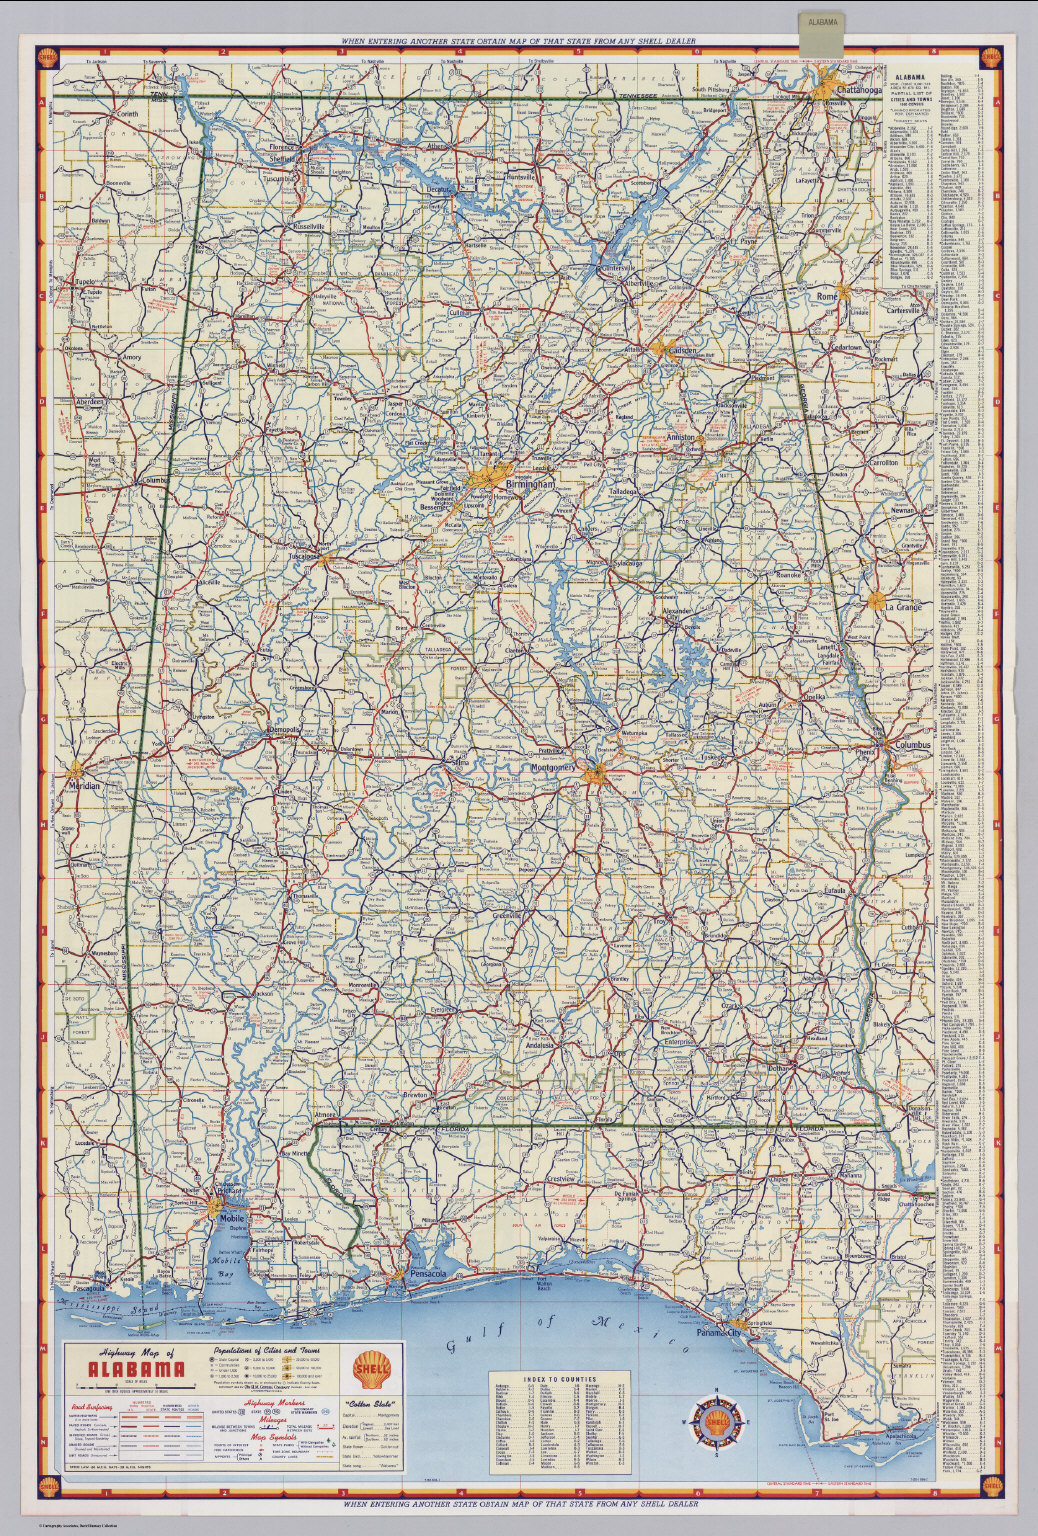 Shell Highway Map Of Alabama David Rumsey Historical Map Collection - Road map of alabama